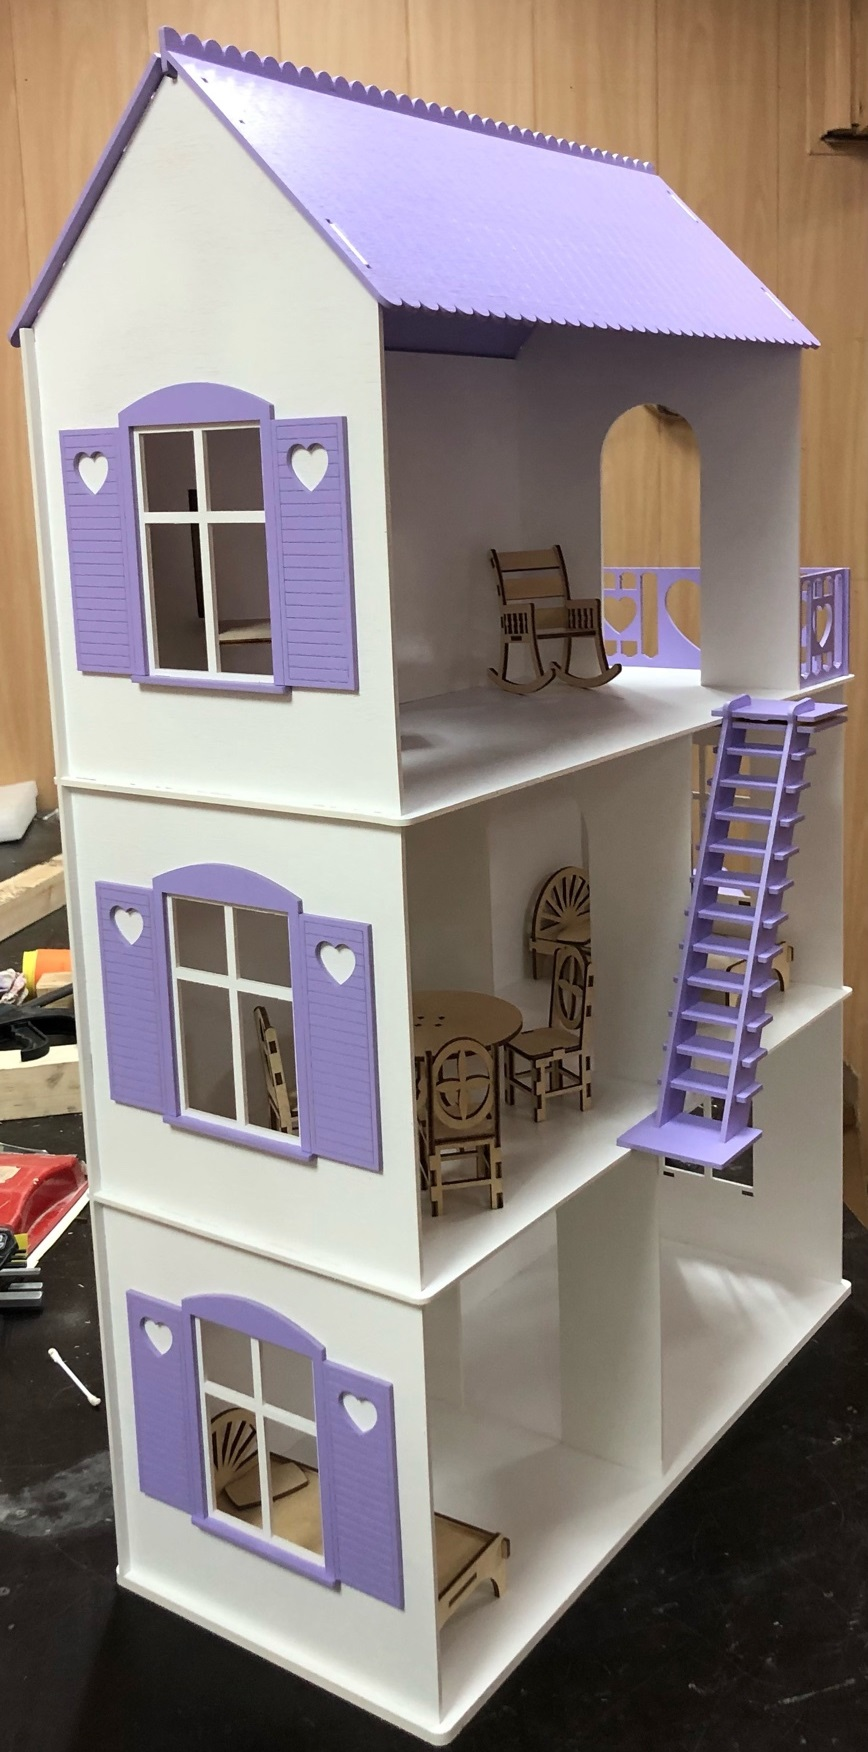 Laser Cut Dollhouse Kit For Beginners DXF File